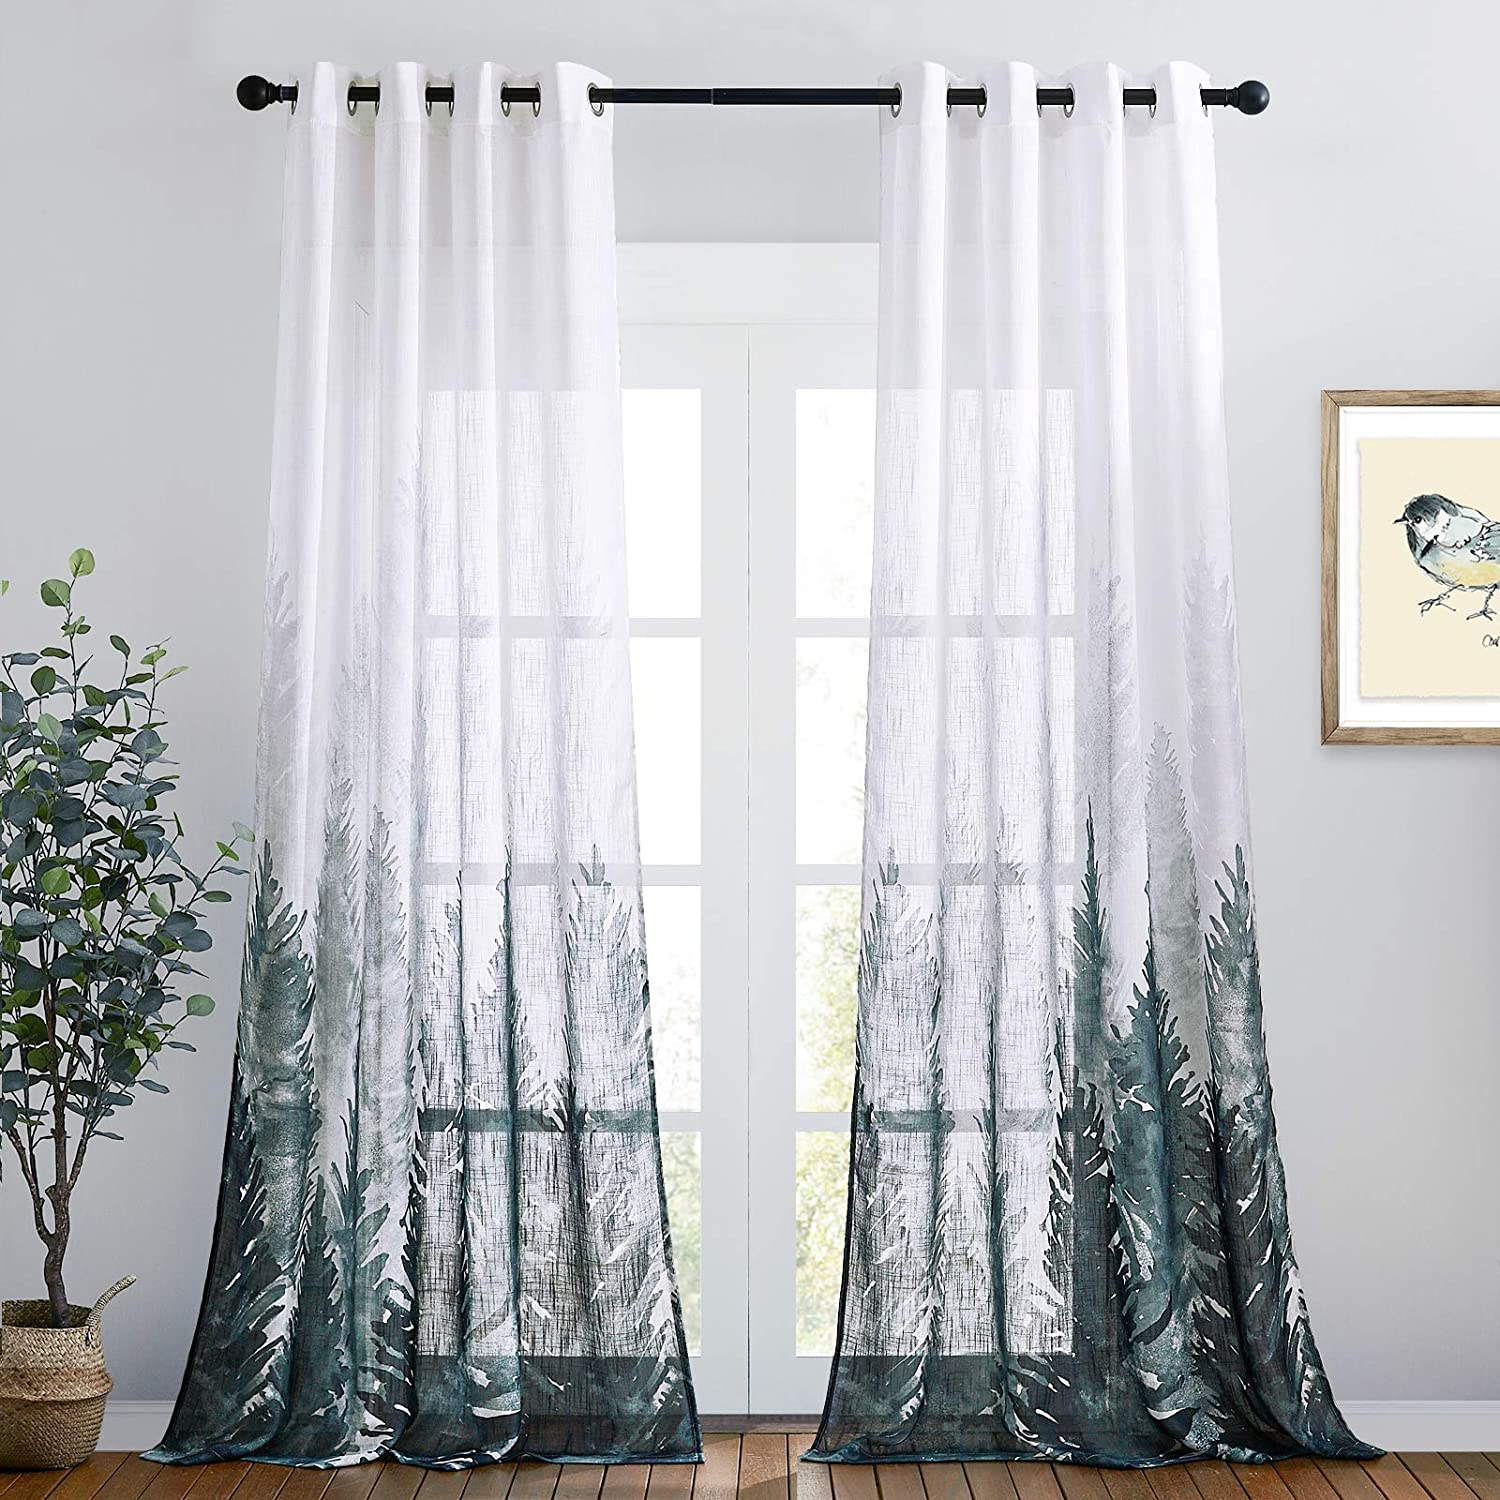 RYB HOME Linen Textured Sheer Curtains, Privacy Semi Sheer Curtains Foggy Ombre Tree Print Drapes for Bedroom Kitchen Shower Living Room, Wide 50 x Long 108 inch, 2 Panels